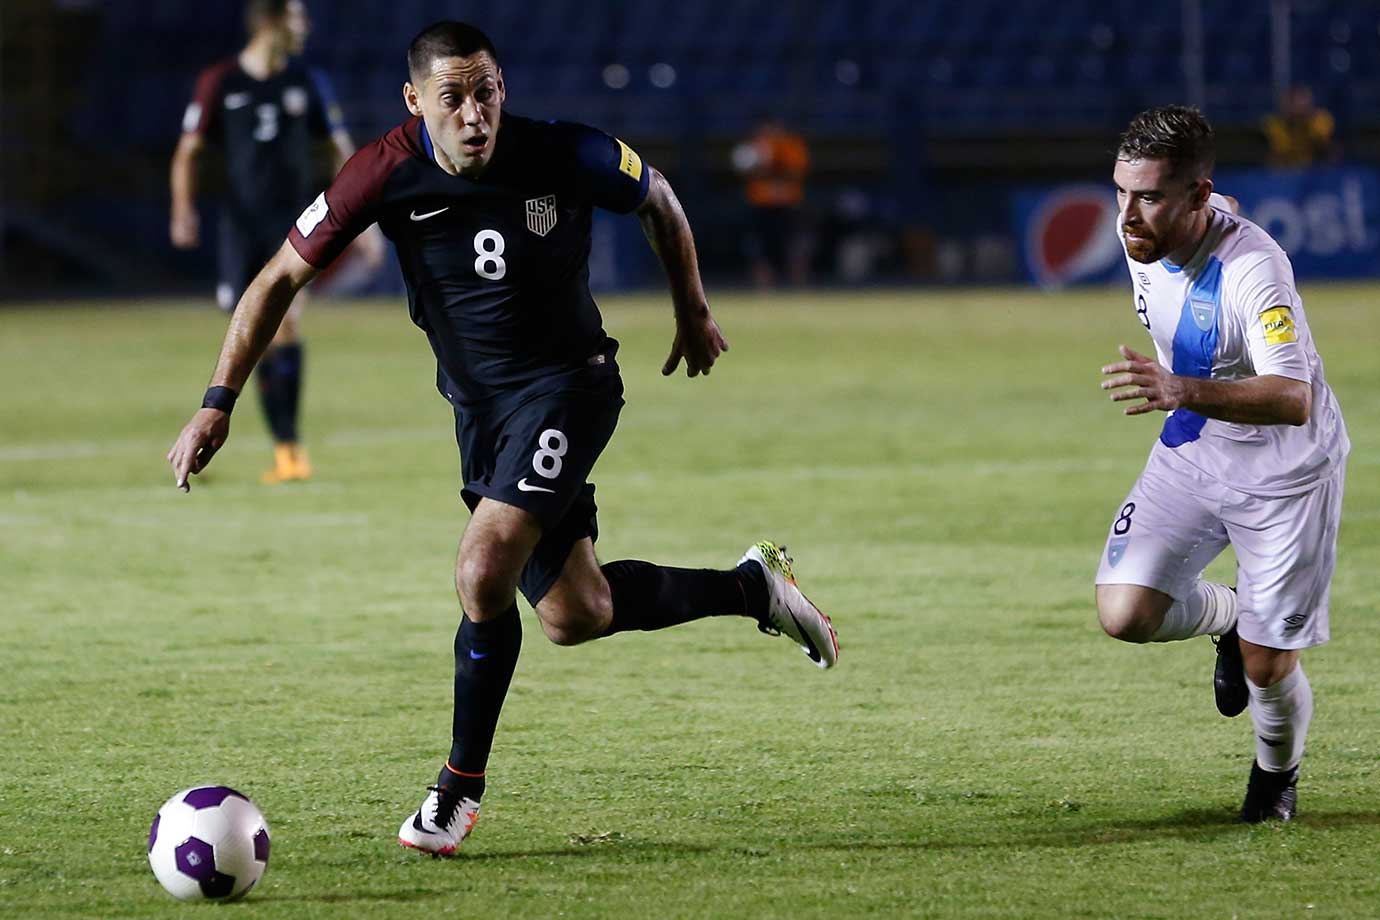 Clint Dempsey of the U.S. and Jean Marquez of Guatemala fight for the ball during a 2018 World Cup qualifying match that the Americans lost 2-0.